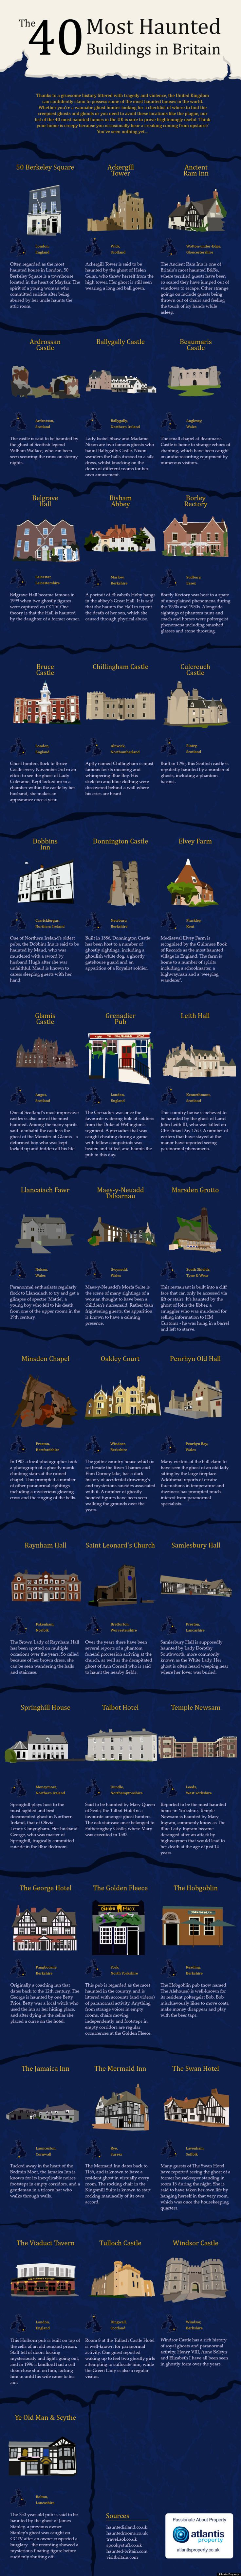 The 40 Most Haunted Buildings In Britain